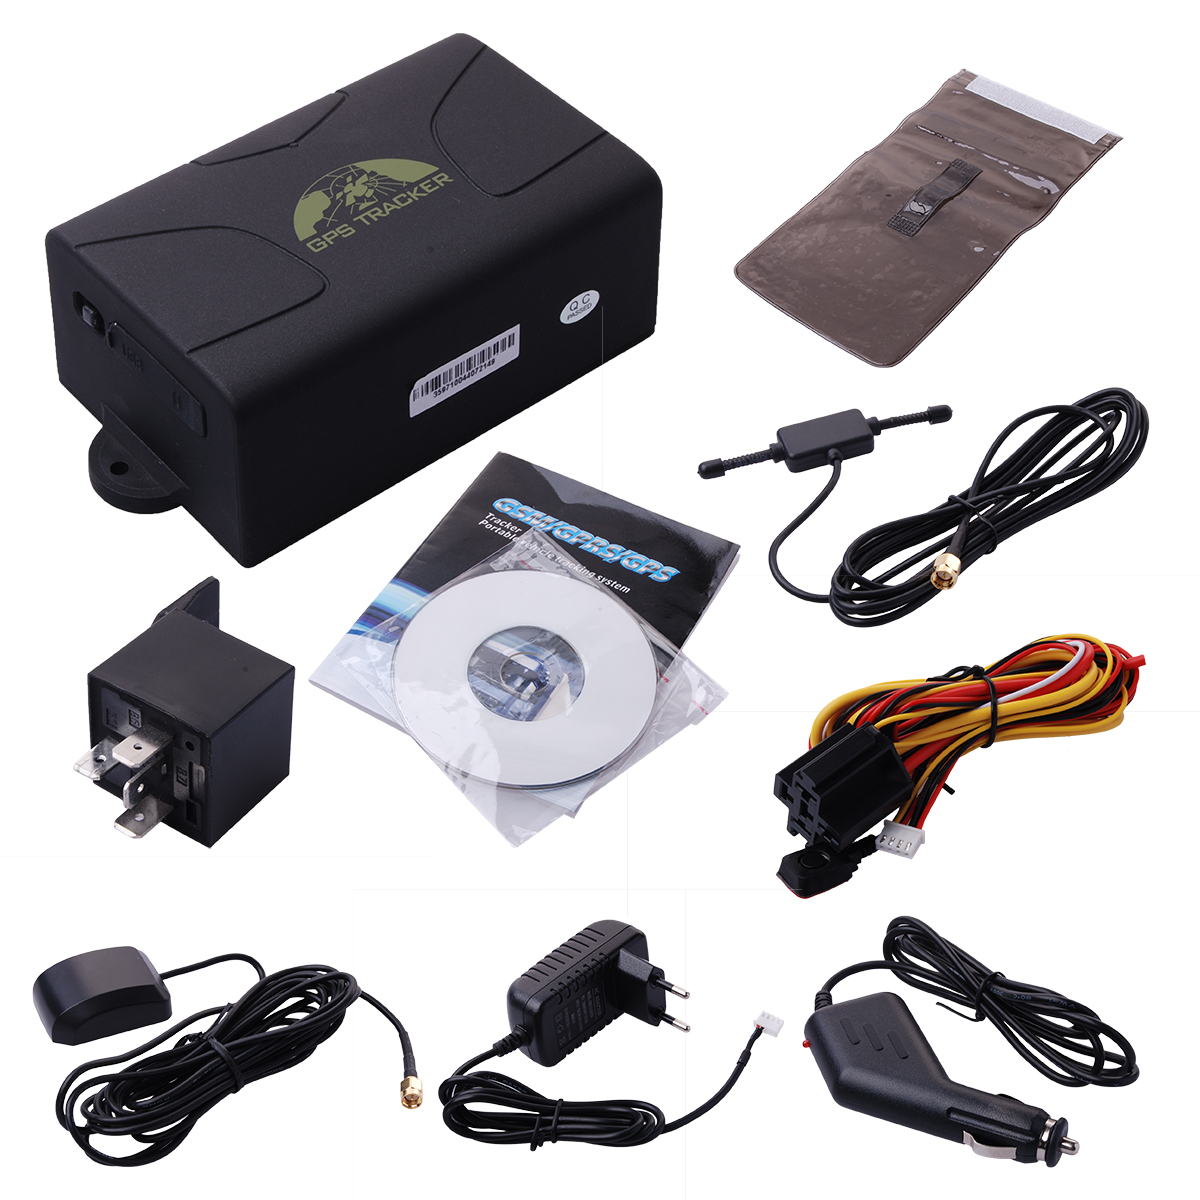 Hidden Gps Tracking Device for Cars Reviews line